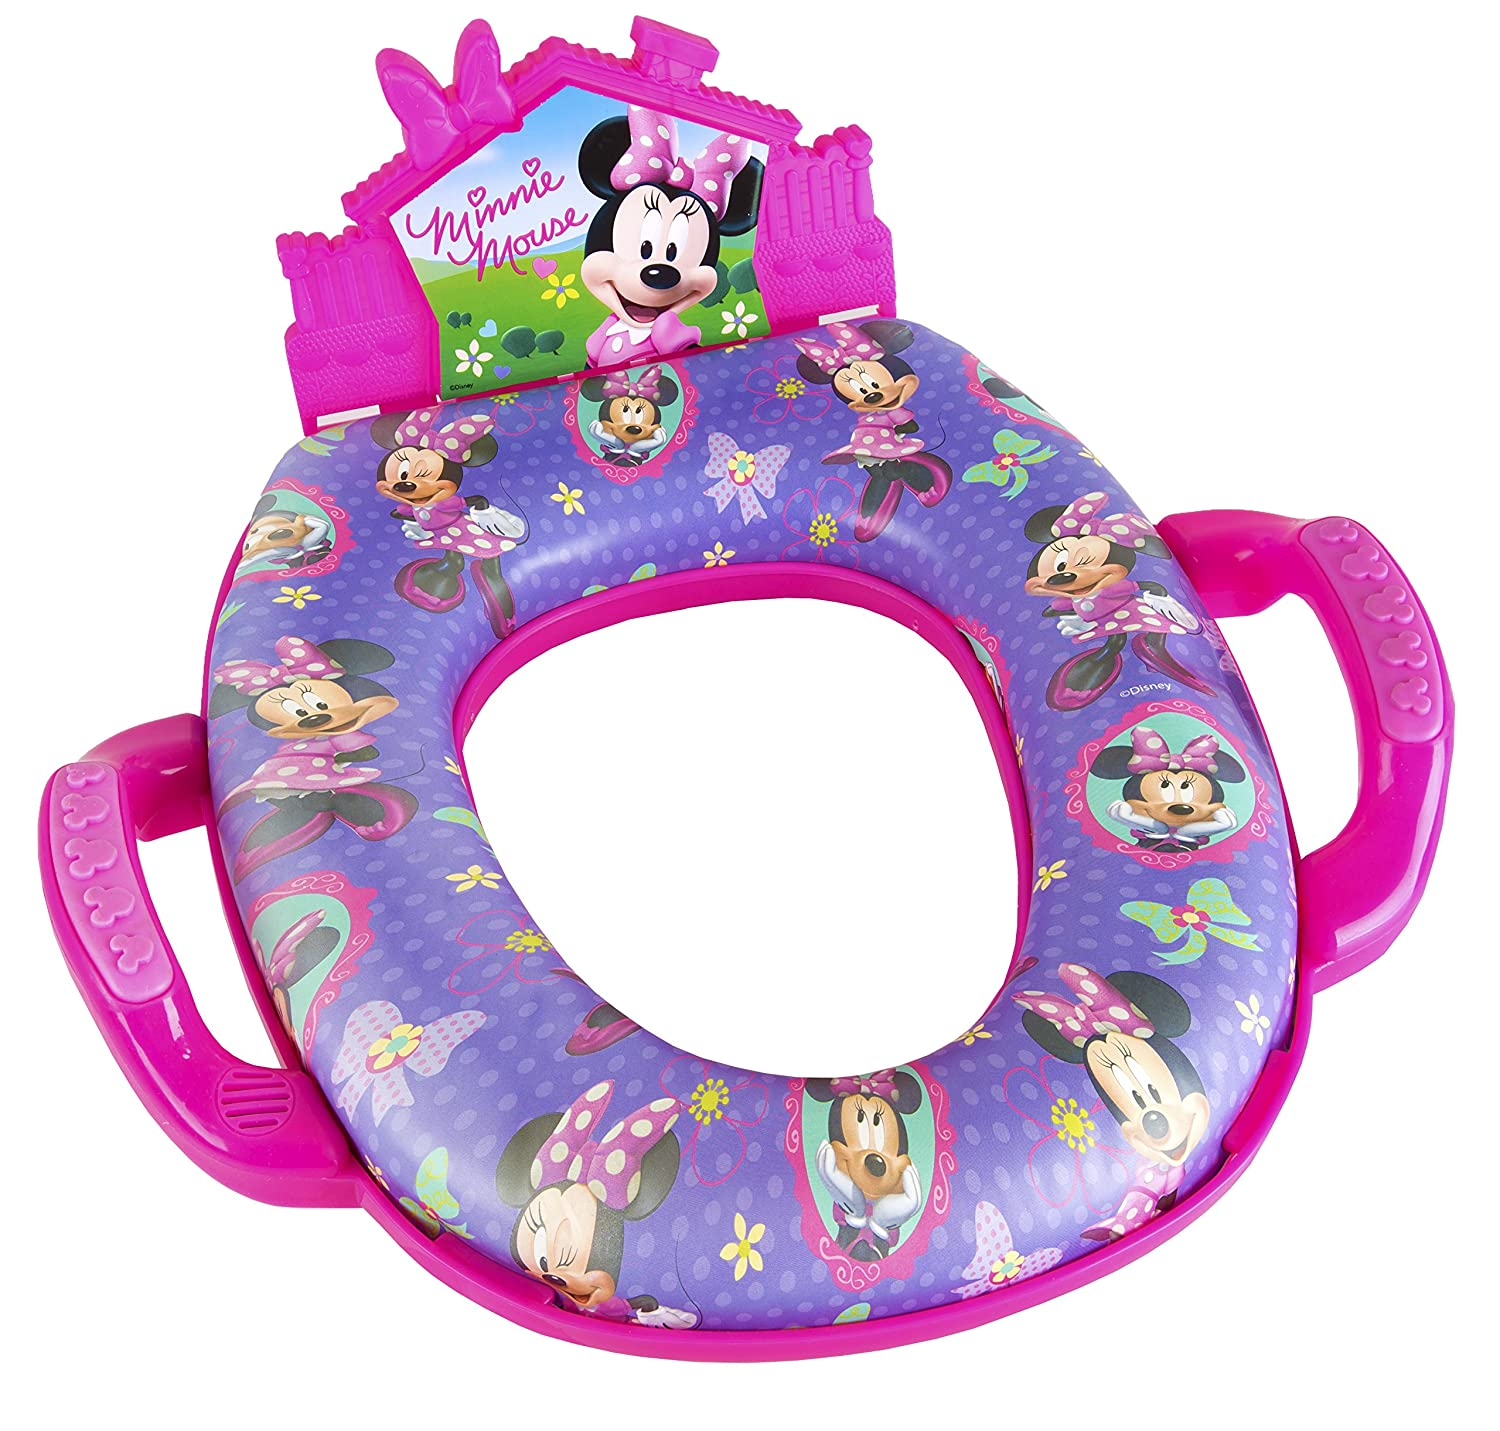 Disney Minnie Mouse Deluxe Potty Seat, Pink GINSEY 56741